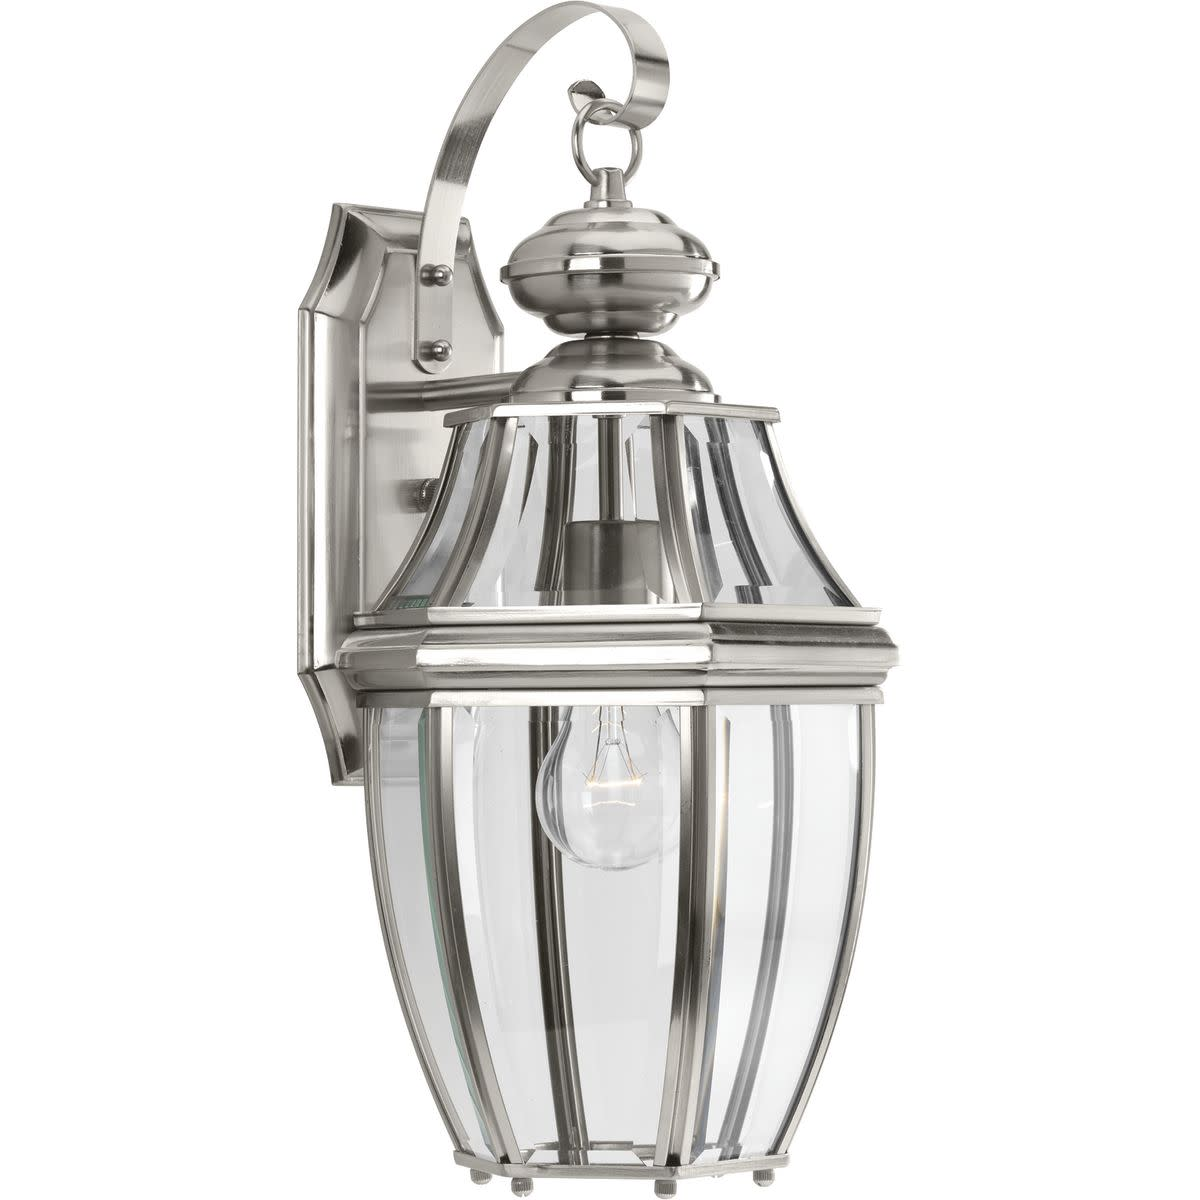 "Progress Lighting P6611 New Haven Single Light 9"" Wide Outdoor Wall Sconce with Clear Beveled Glass Panels"